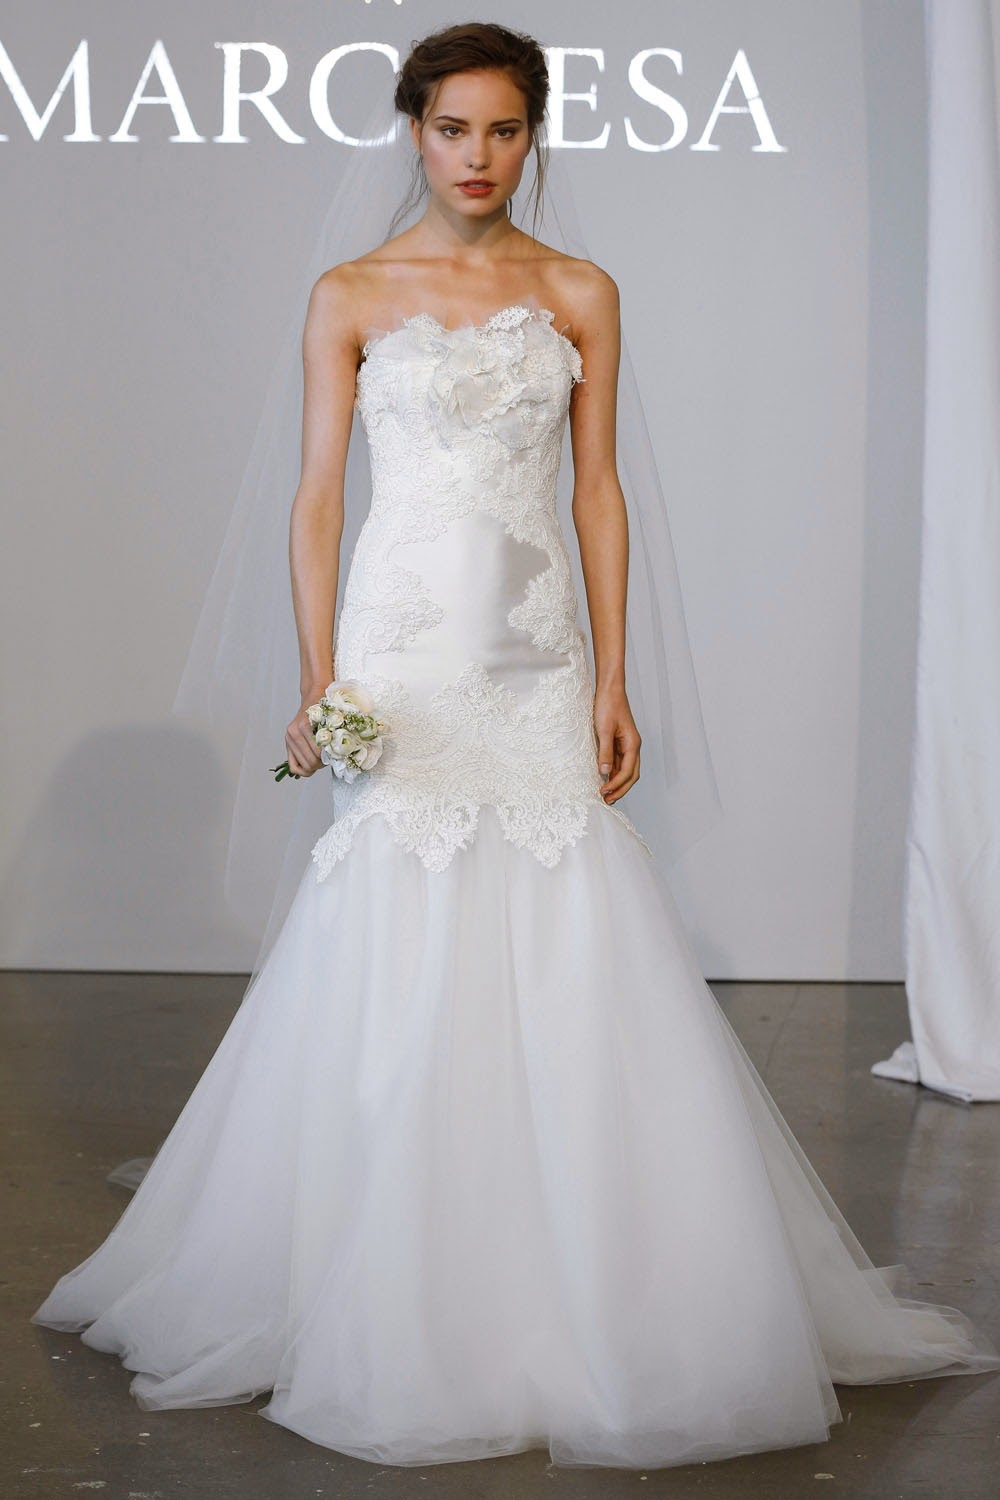 marchesa spring wedding dresses runway marchesa wedding dresses Marchesa Spring Wedding Dresses